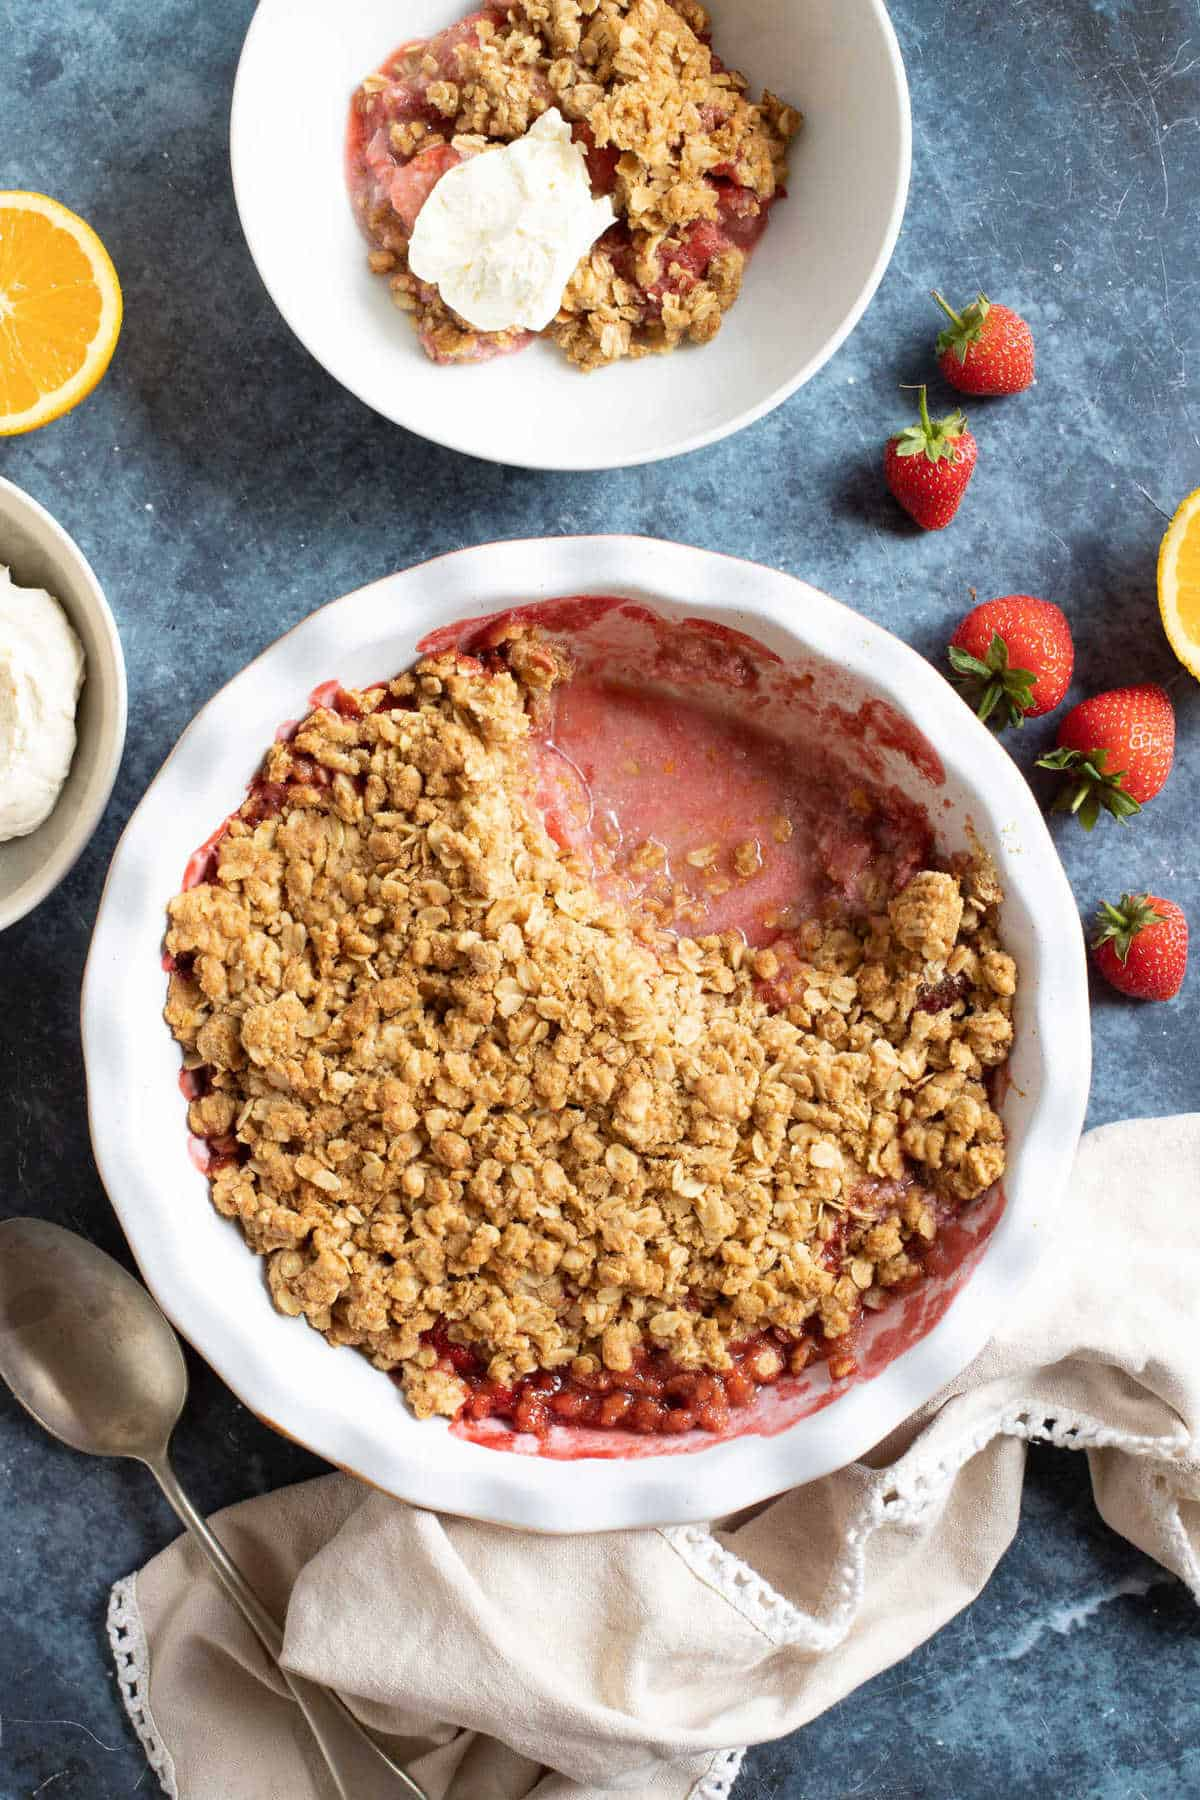 Strawberry crumble served with whipped cream.